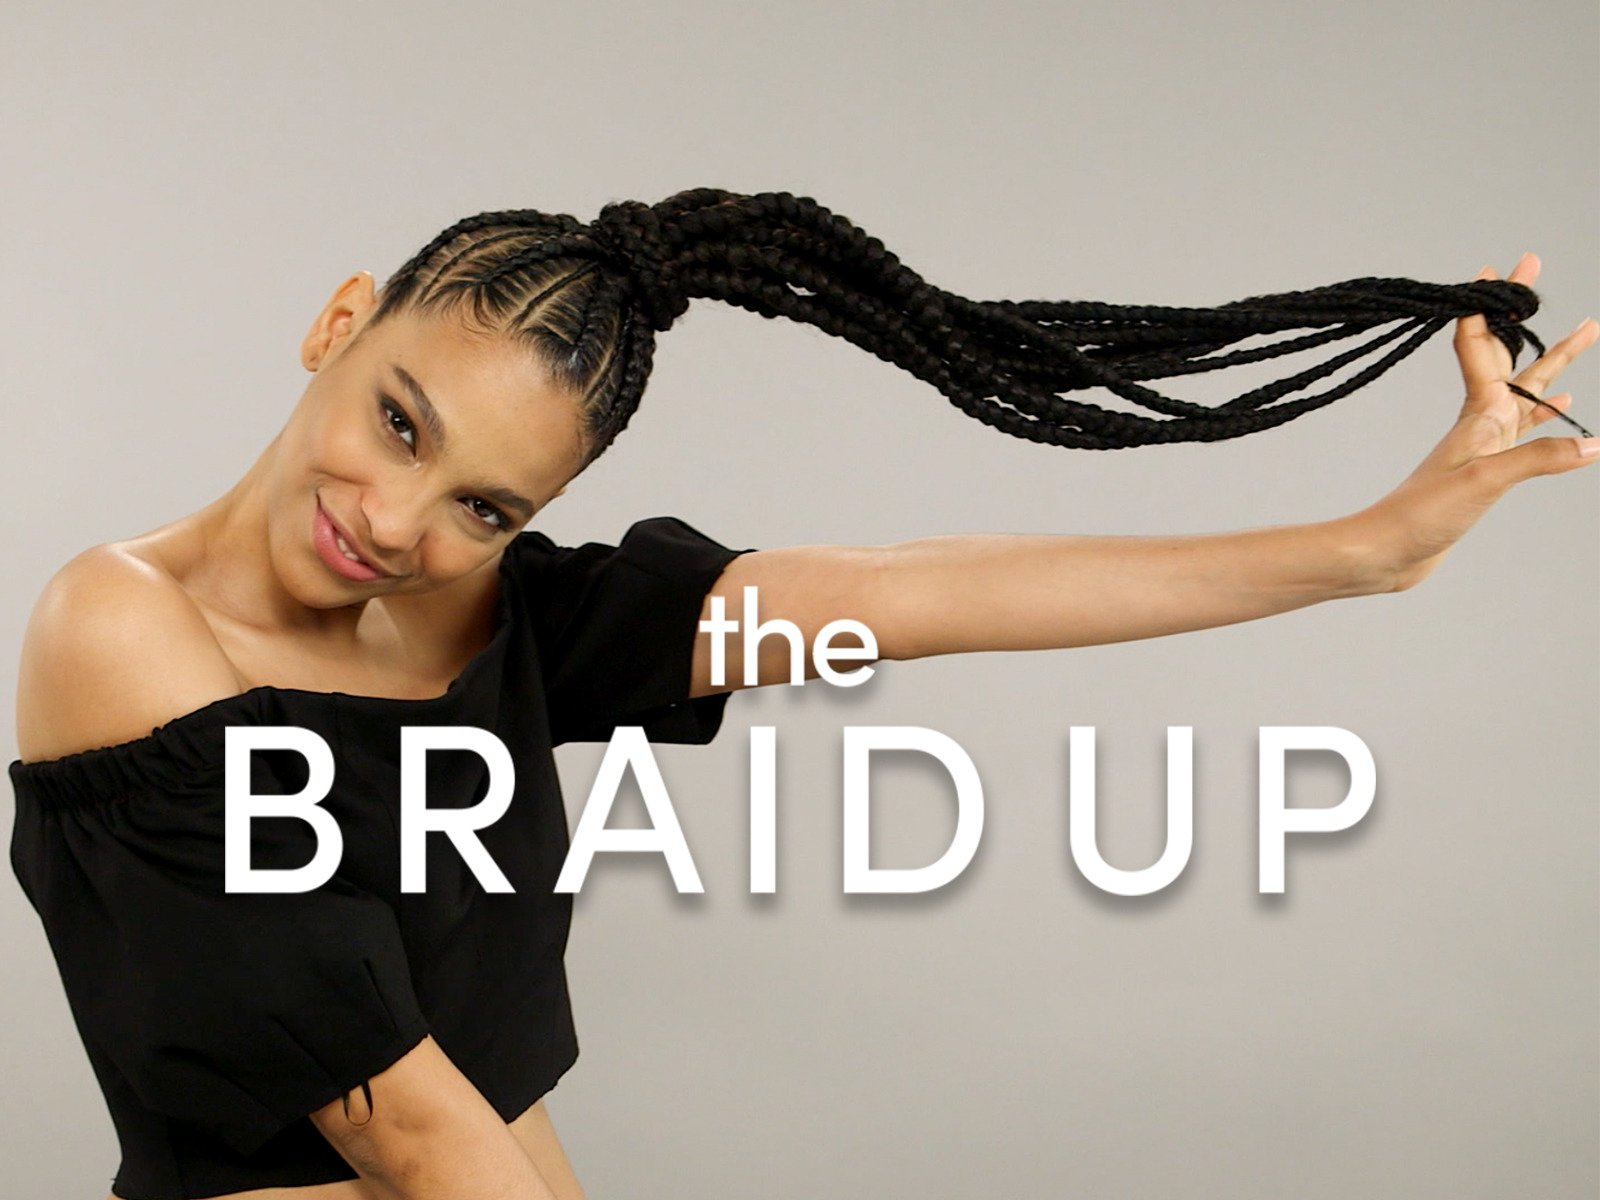 The Braid Up - Season 1